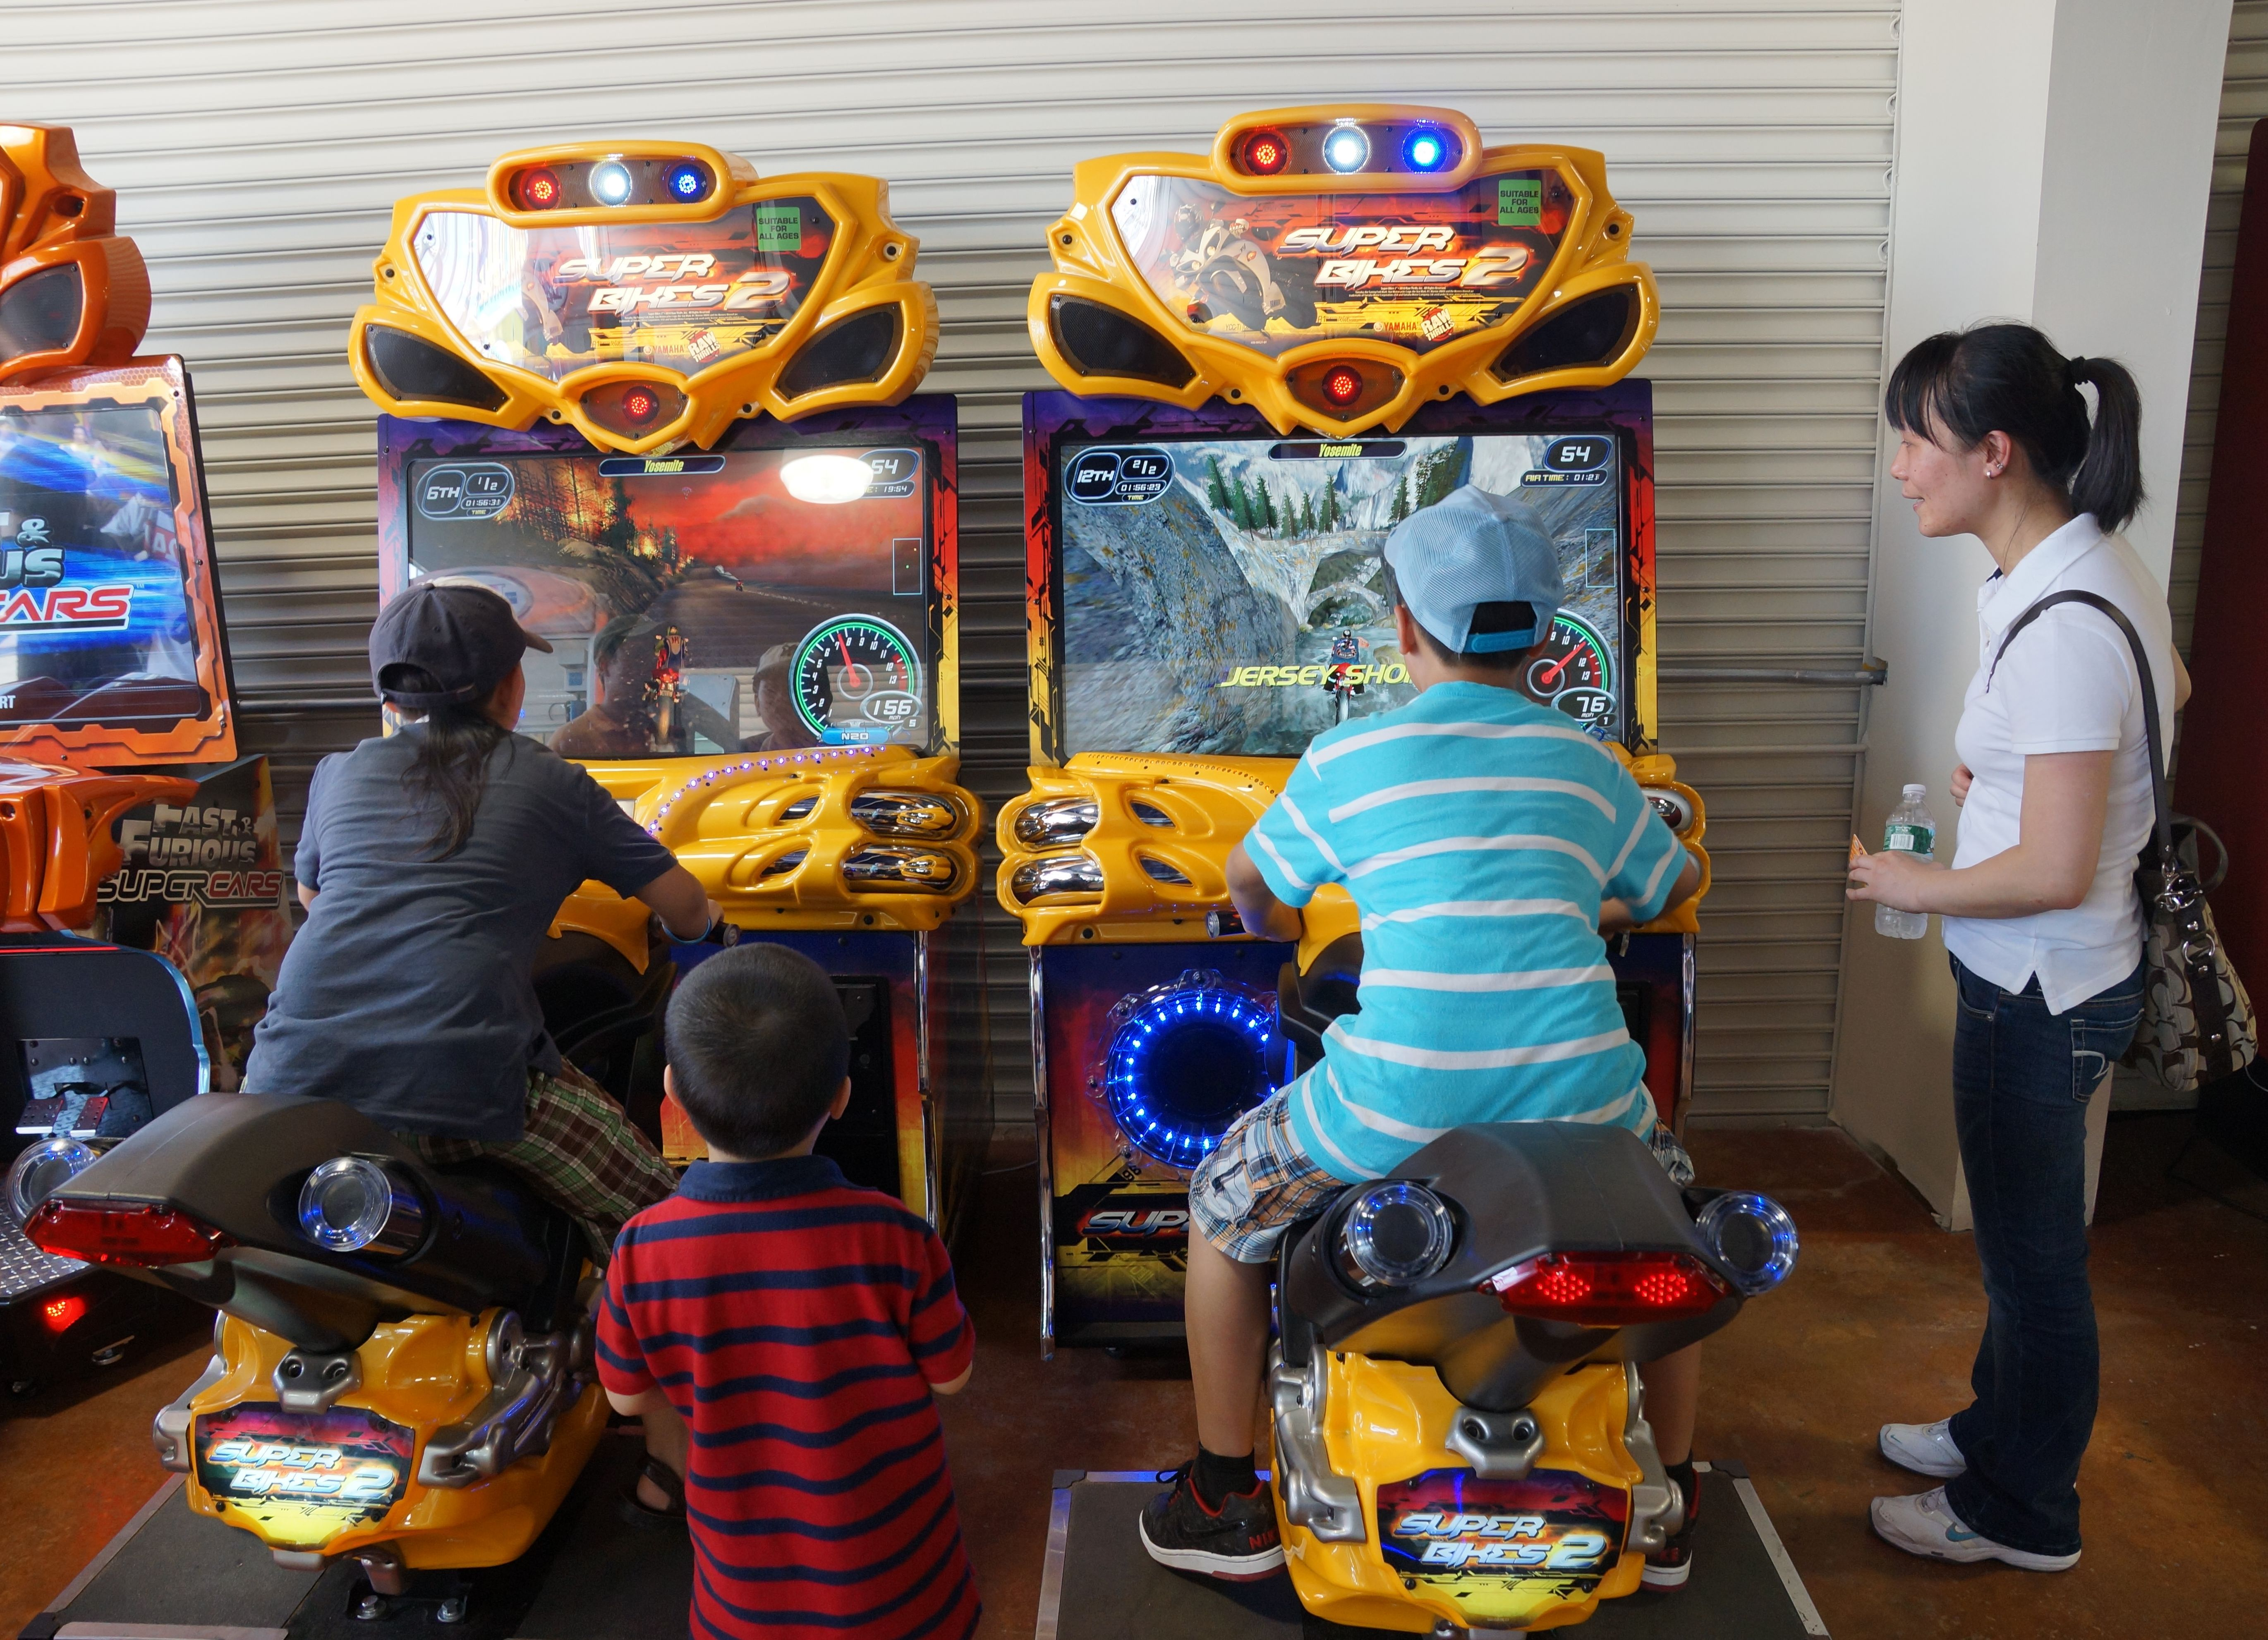 Arcade clipart ride. The motorcycles at brand